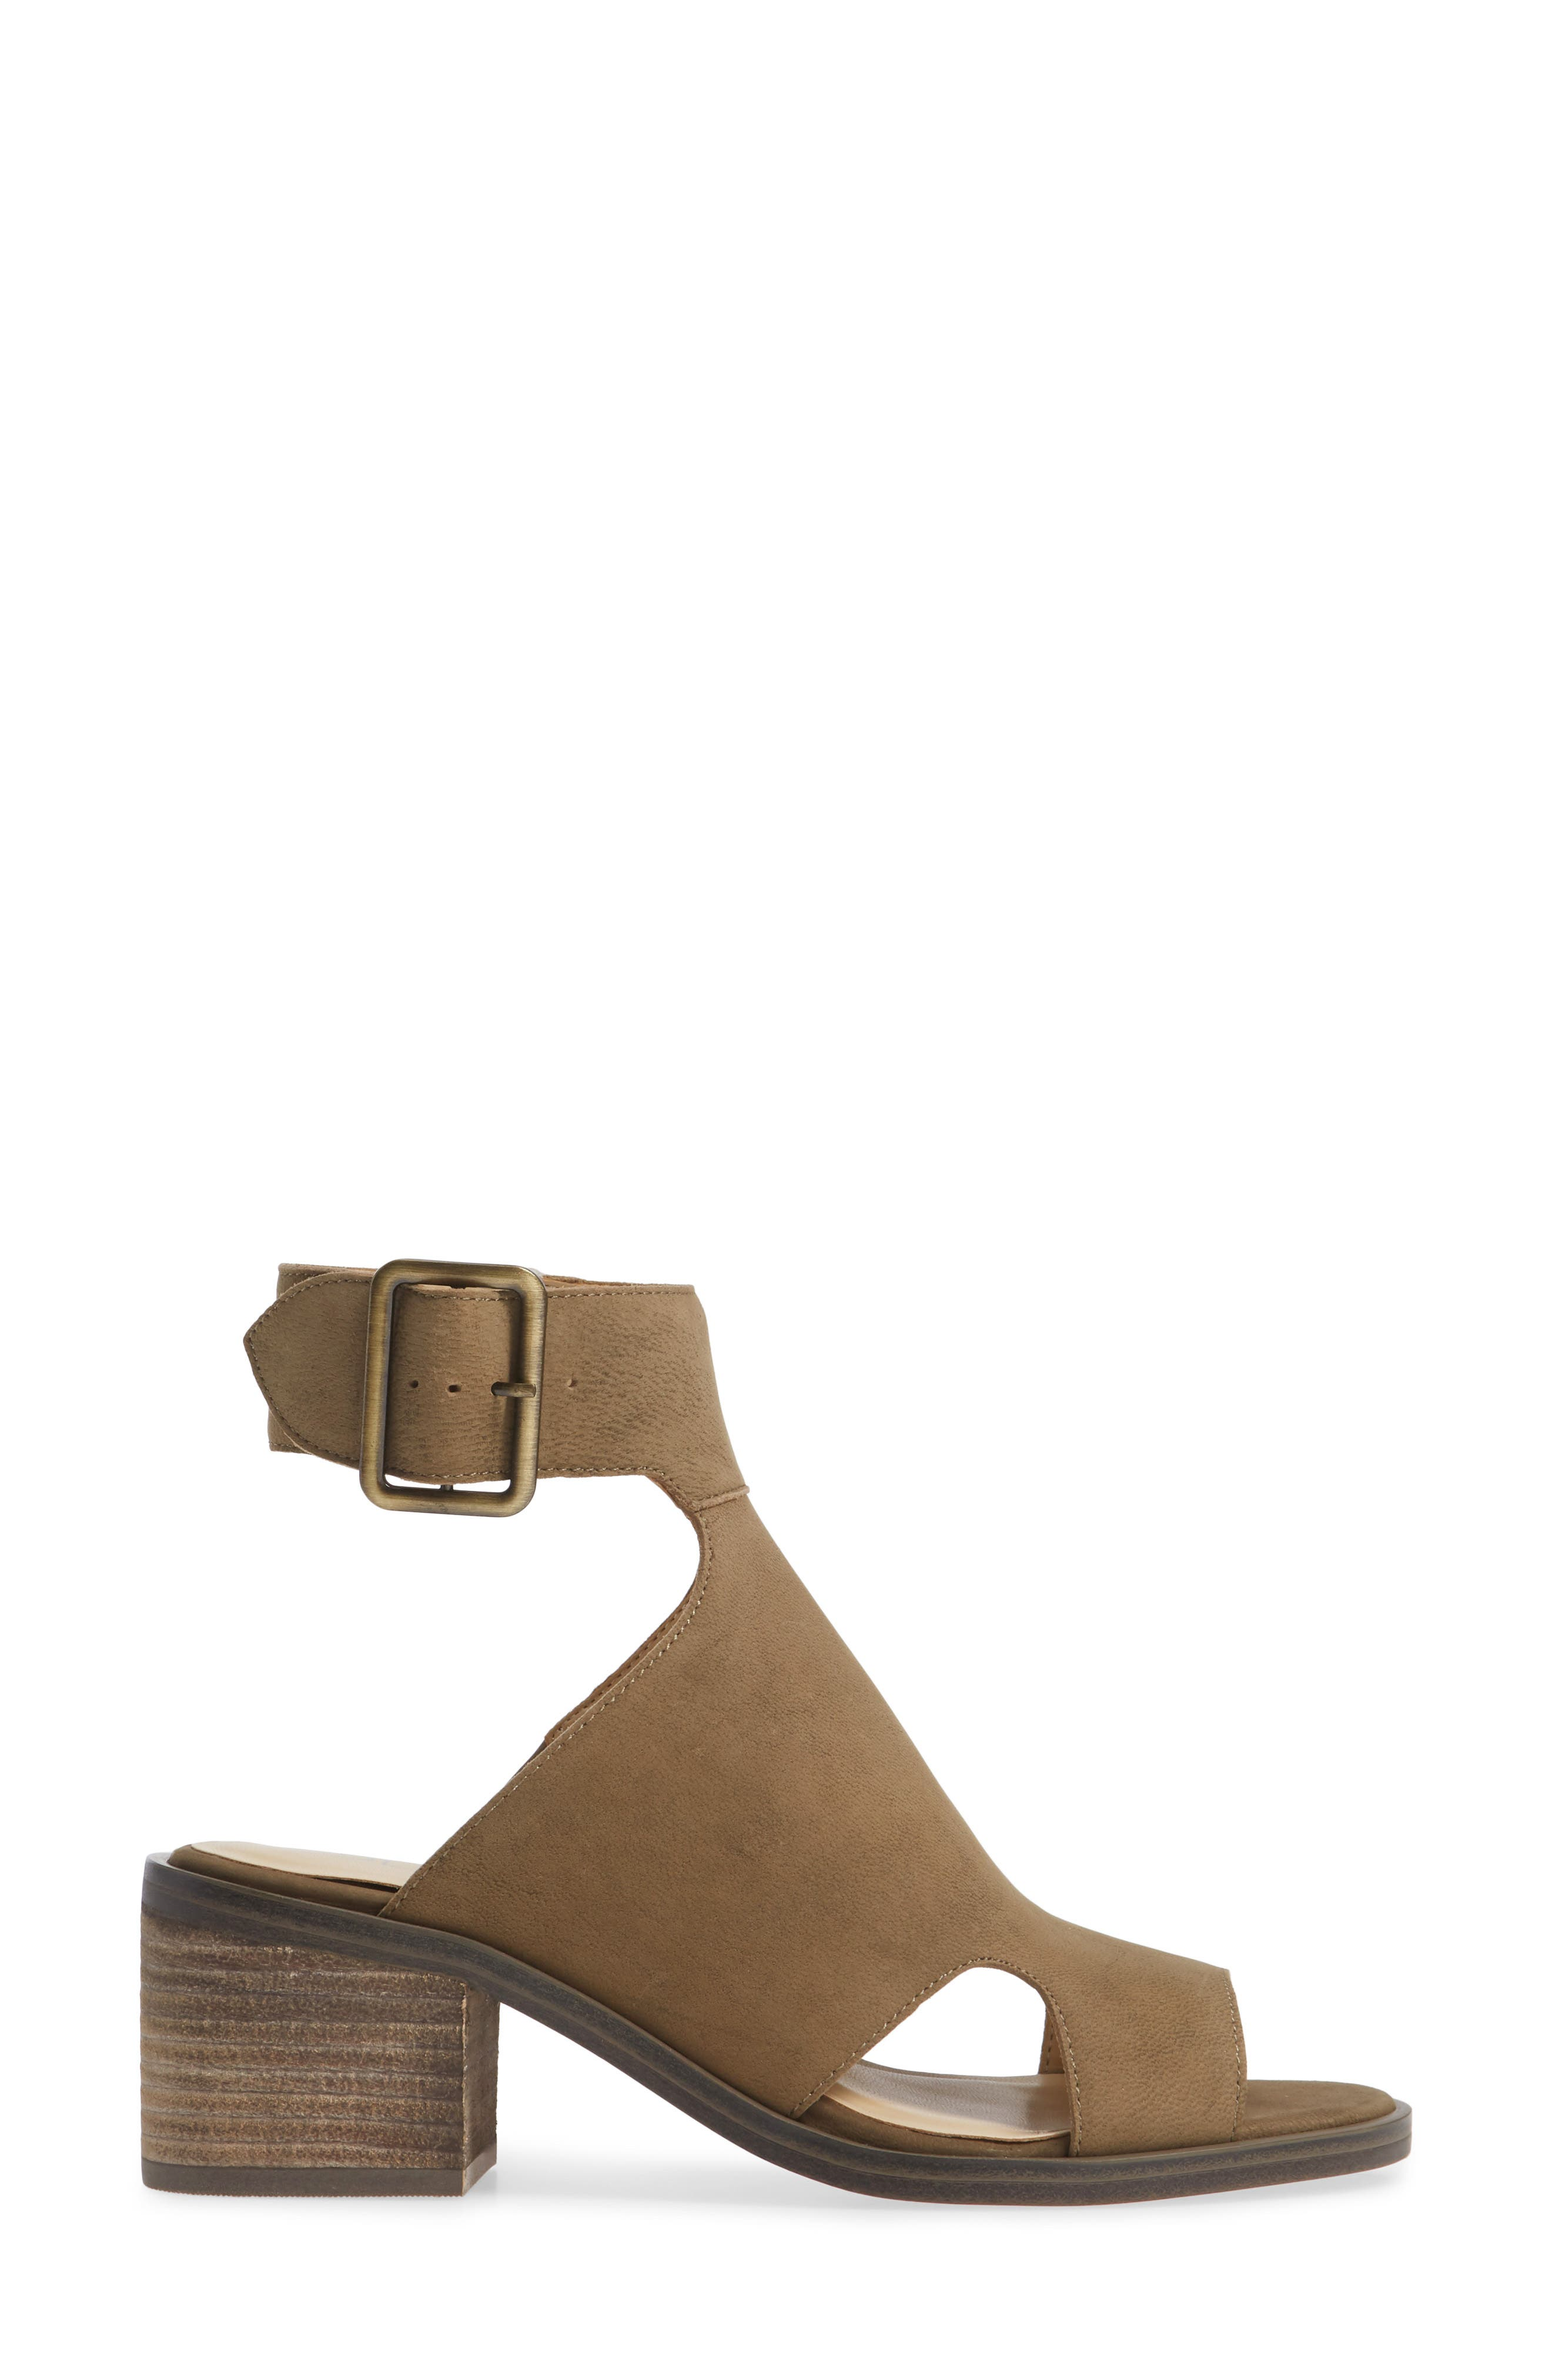 Tally Ankle Cuff Sandal,                             Alternate thumbnail 3, color,                             343